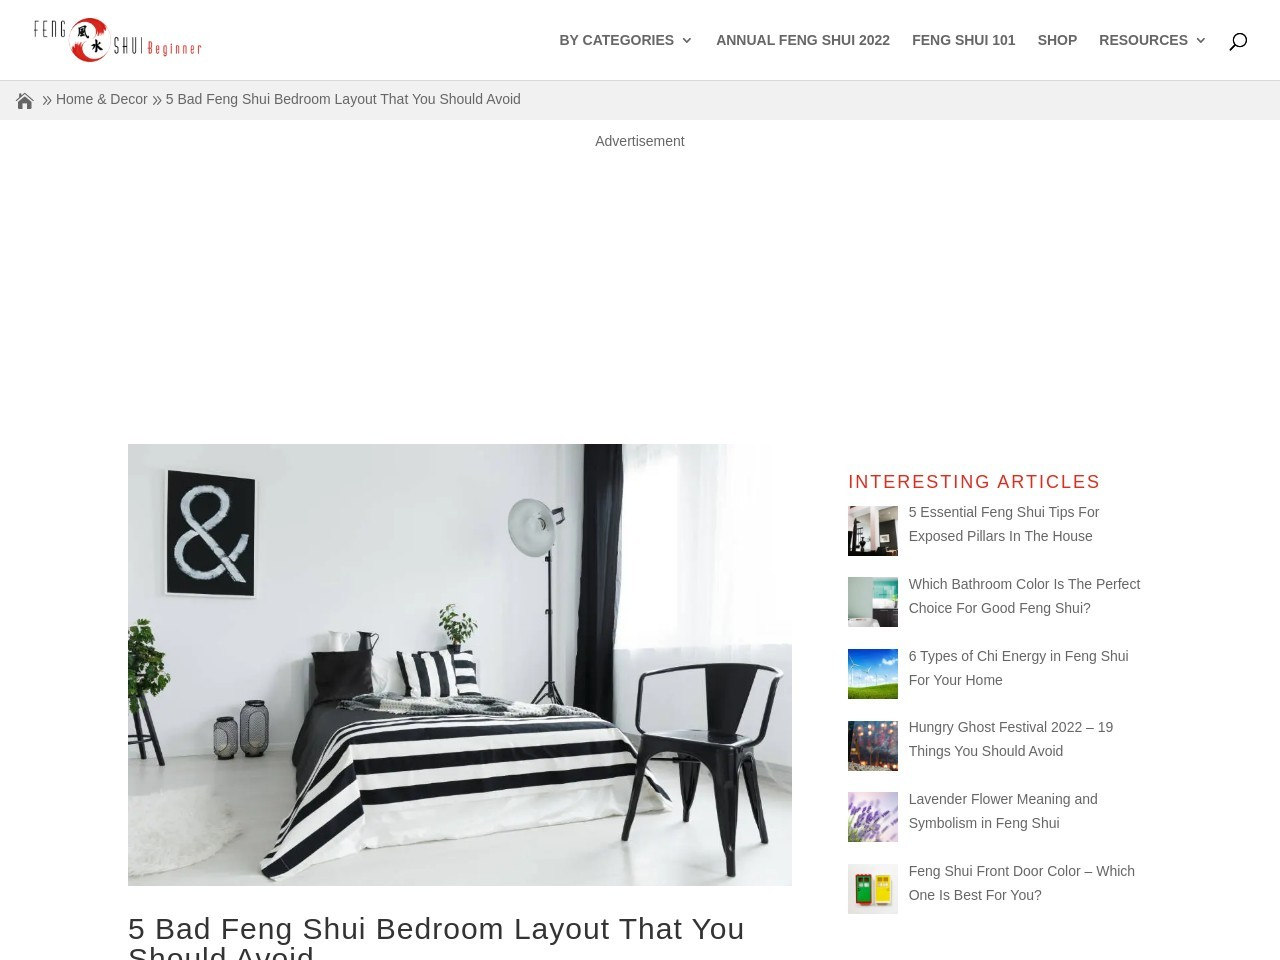 5 Bad Feng Shui Bedroom Layout That You Should Avoid